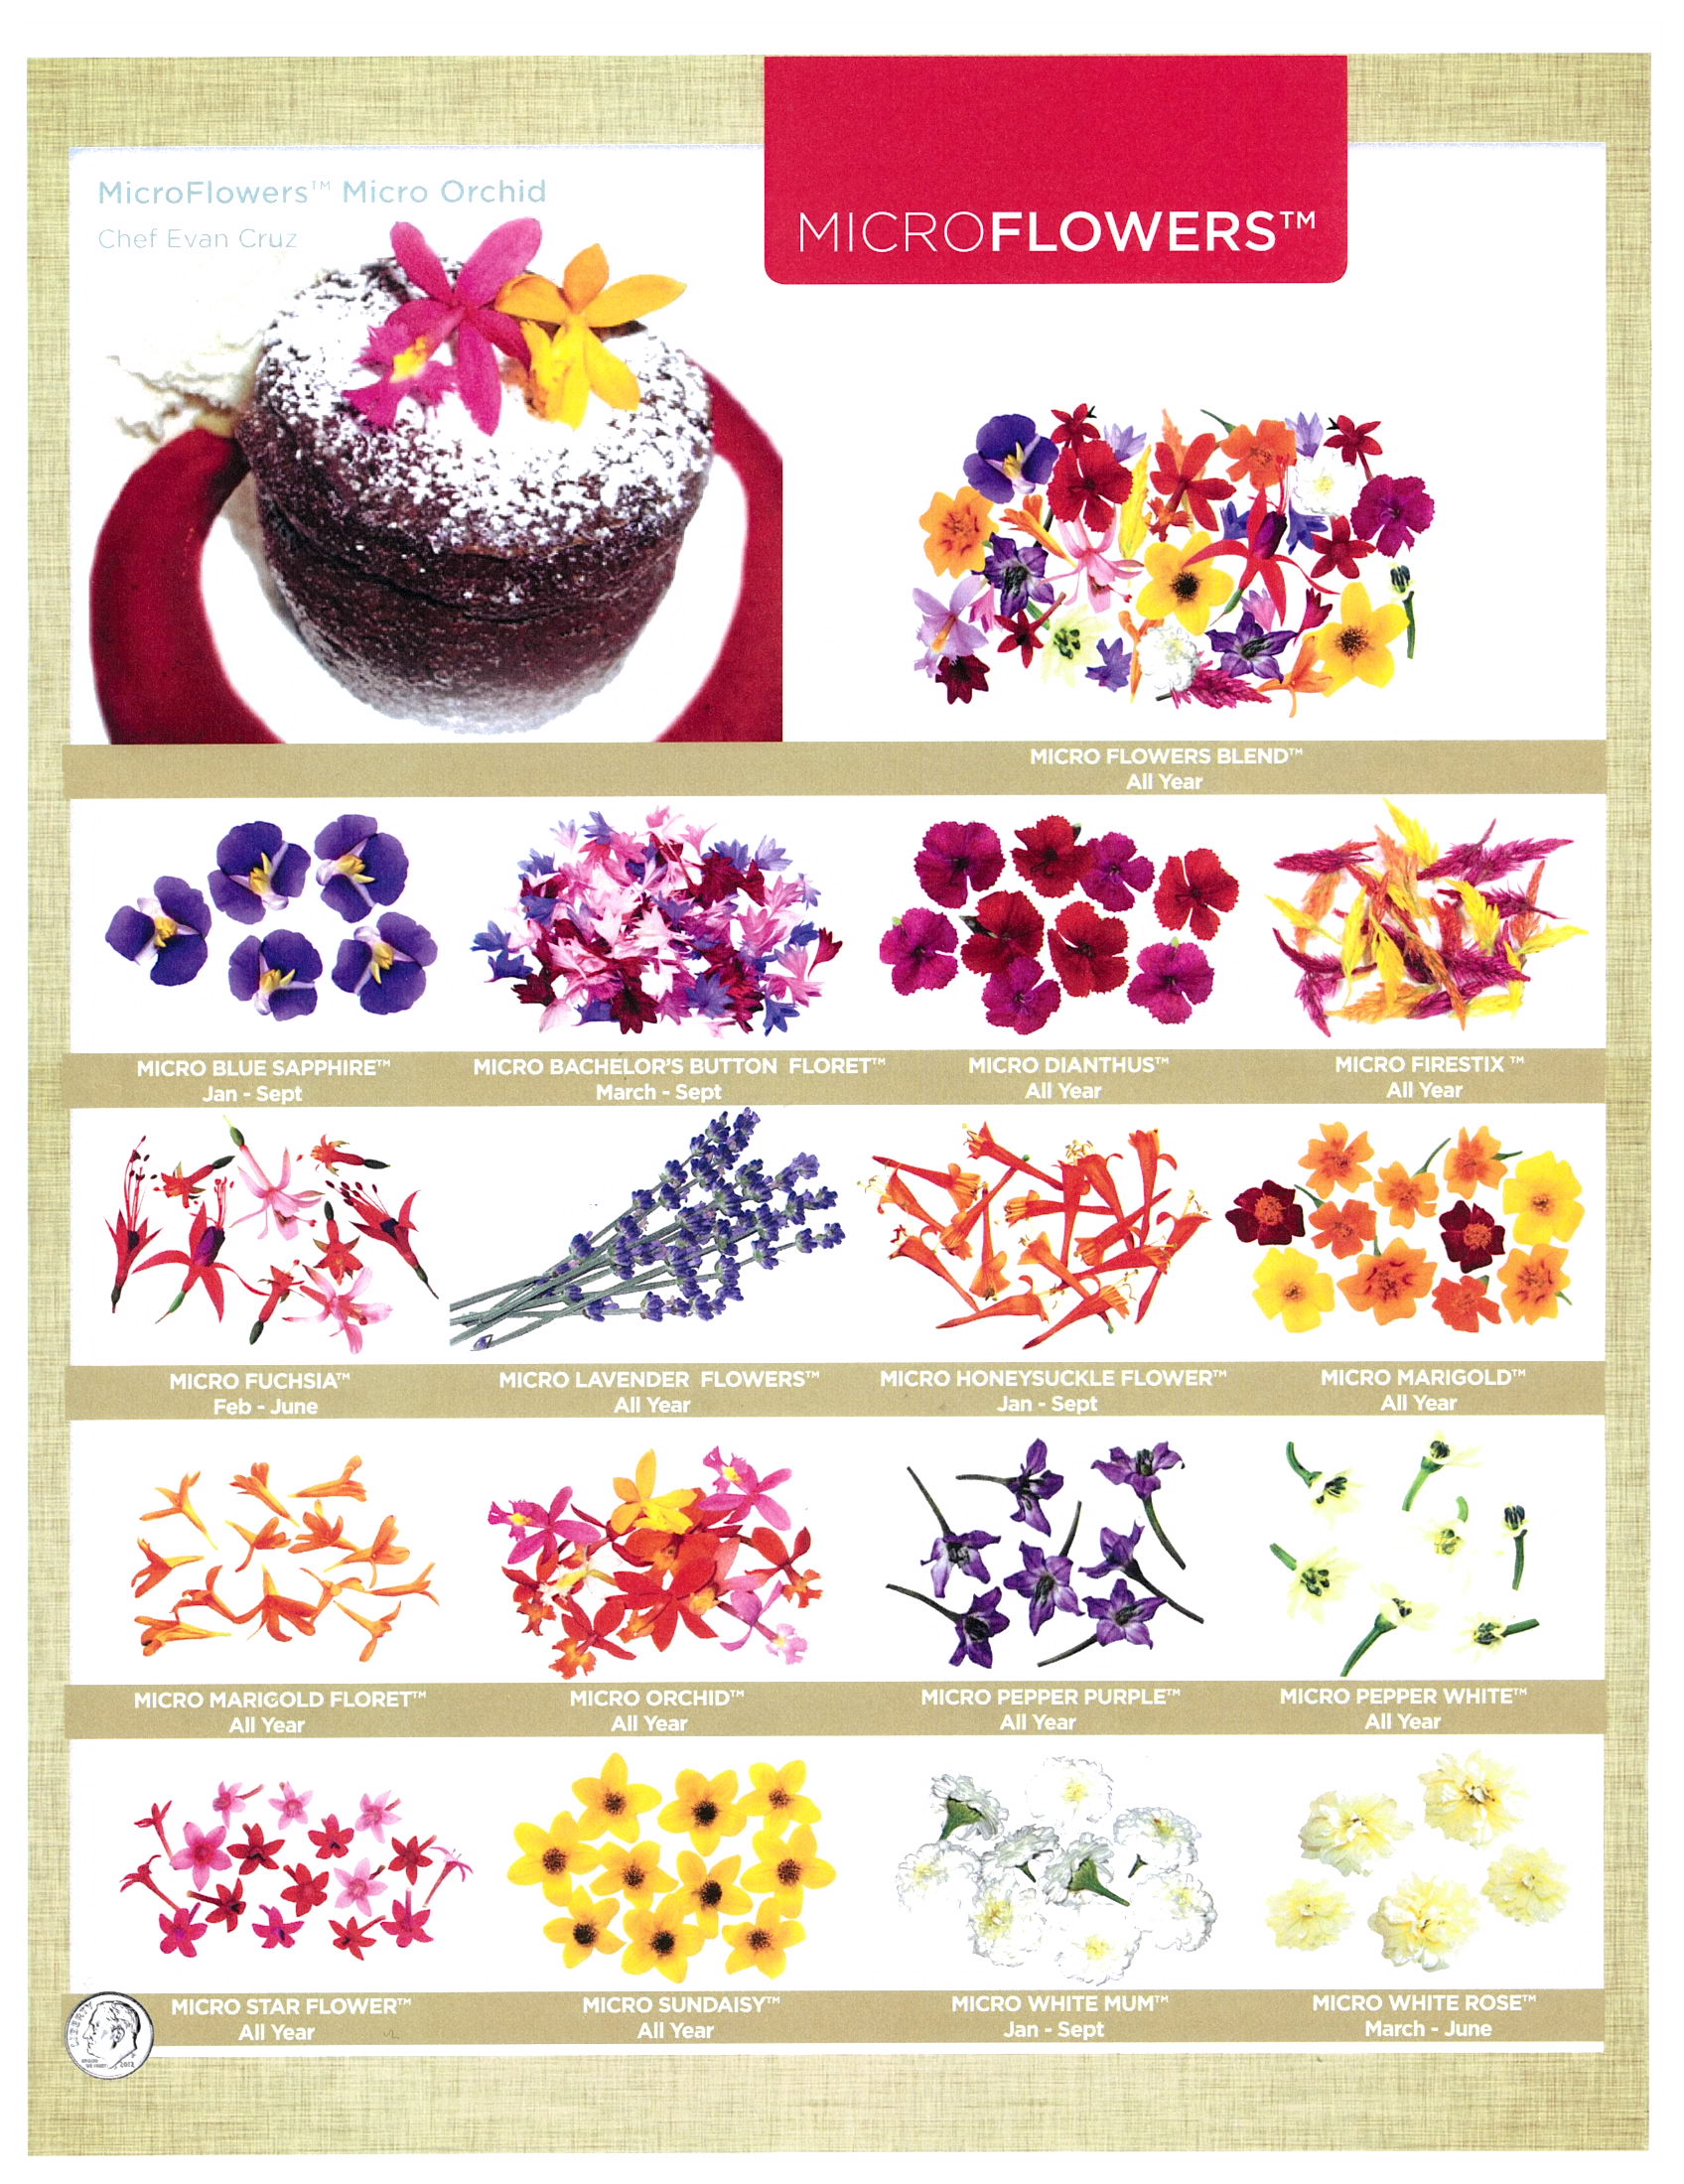 edible flowers page 4